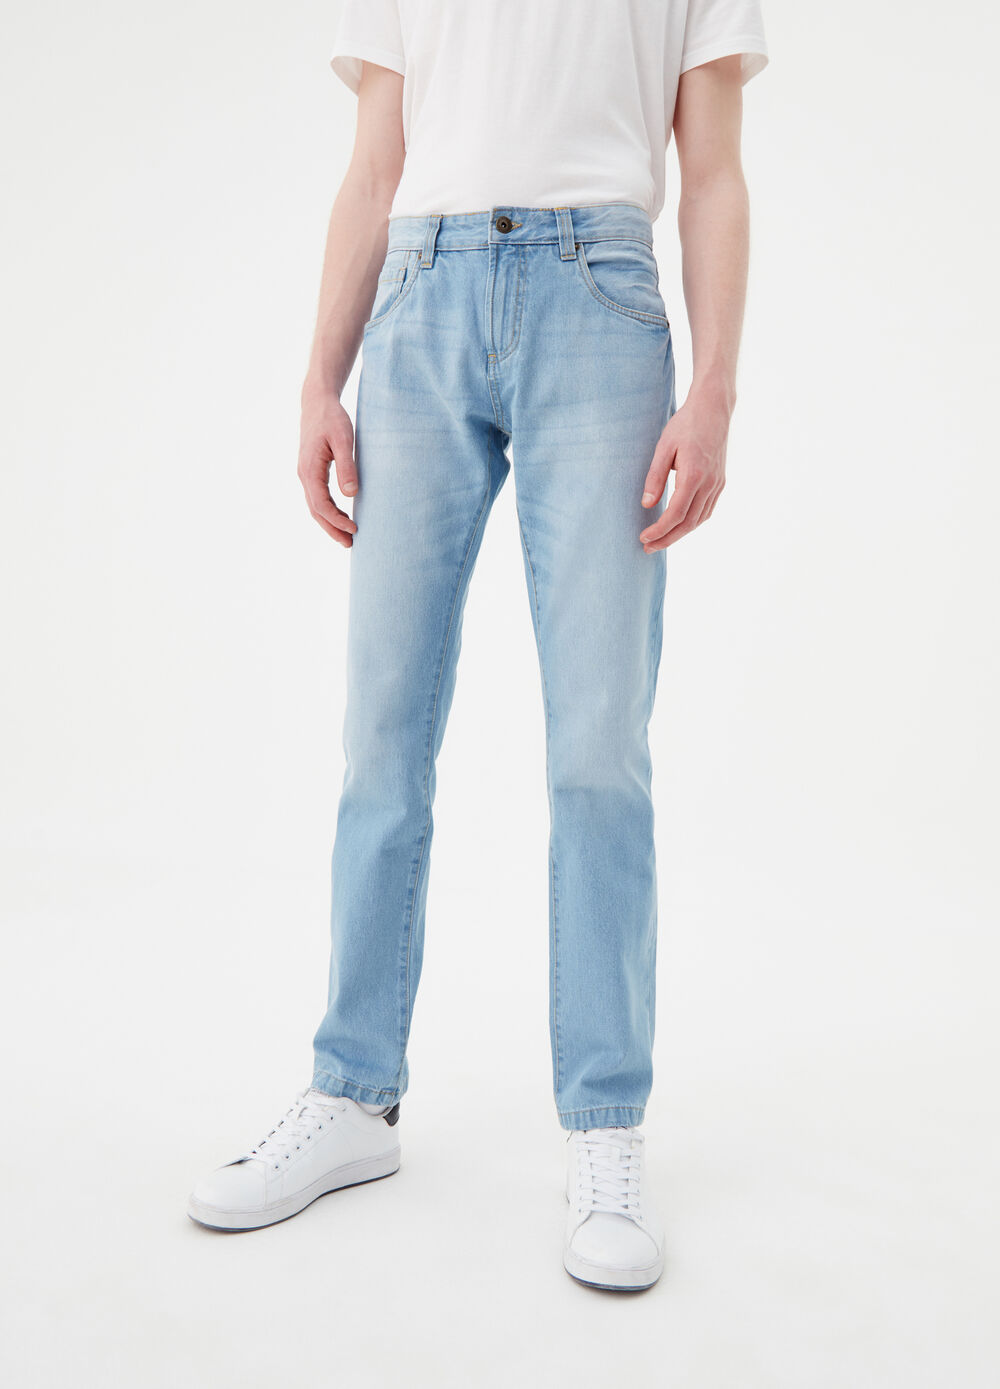 Five-pocket, straight-fit jeans